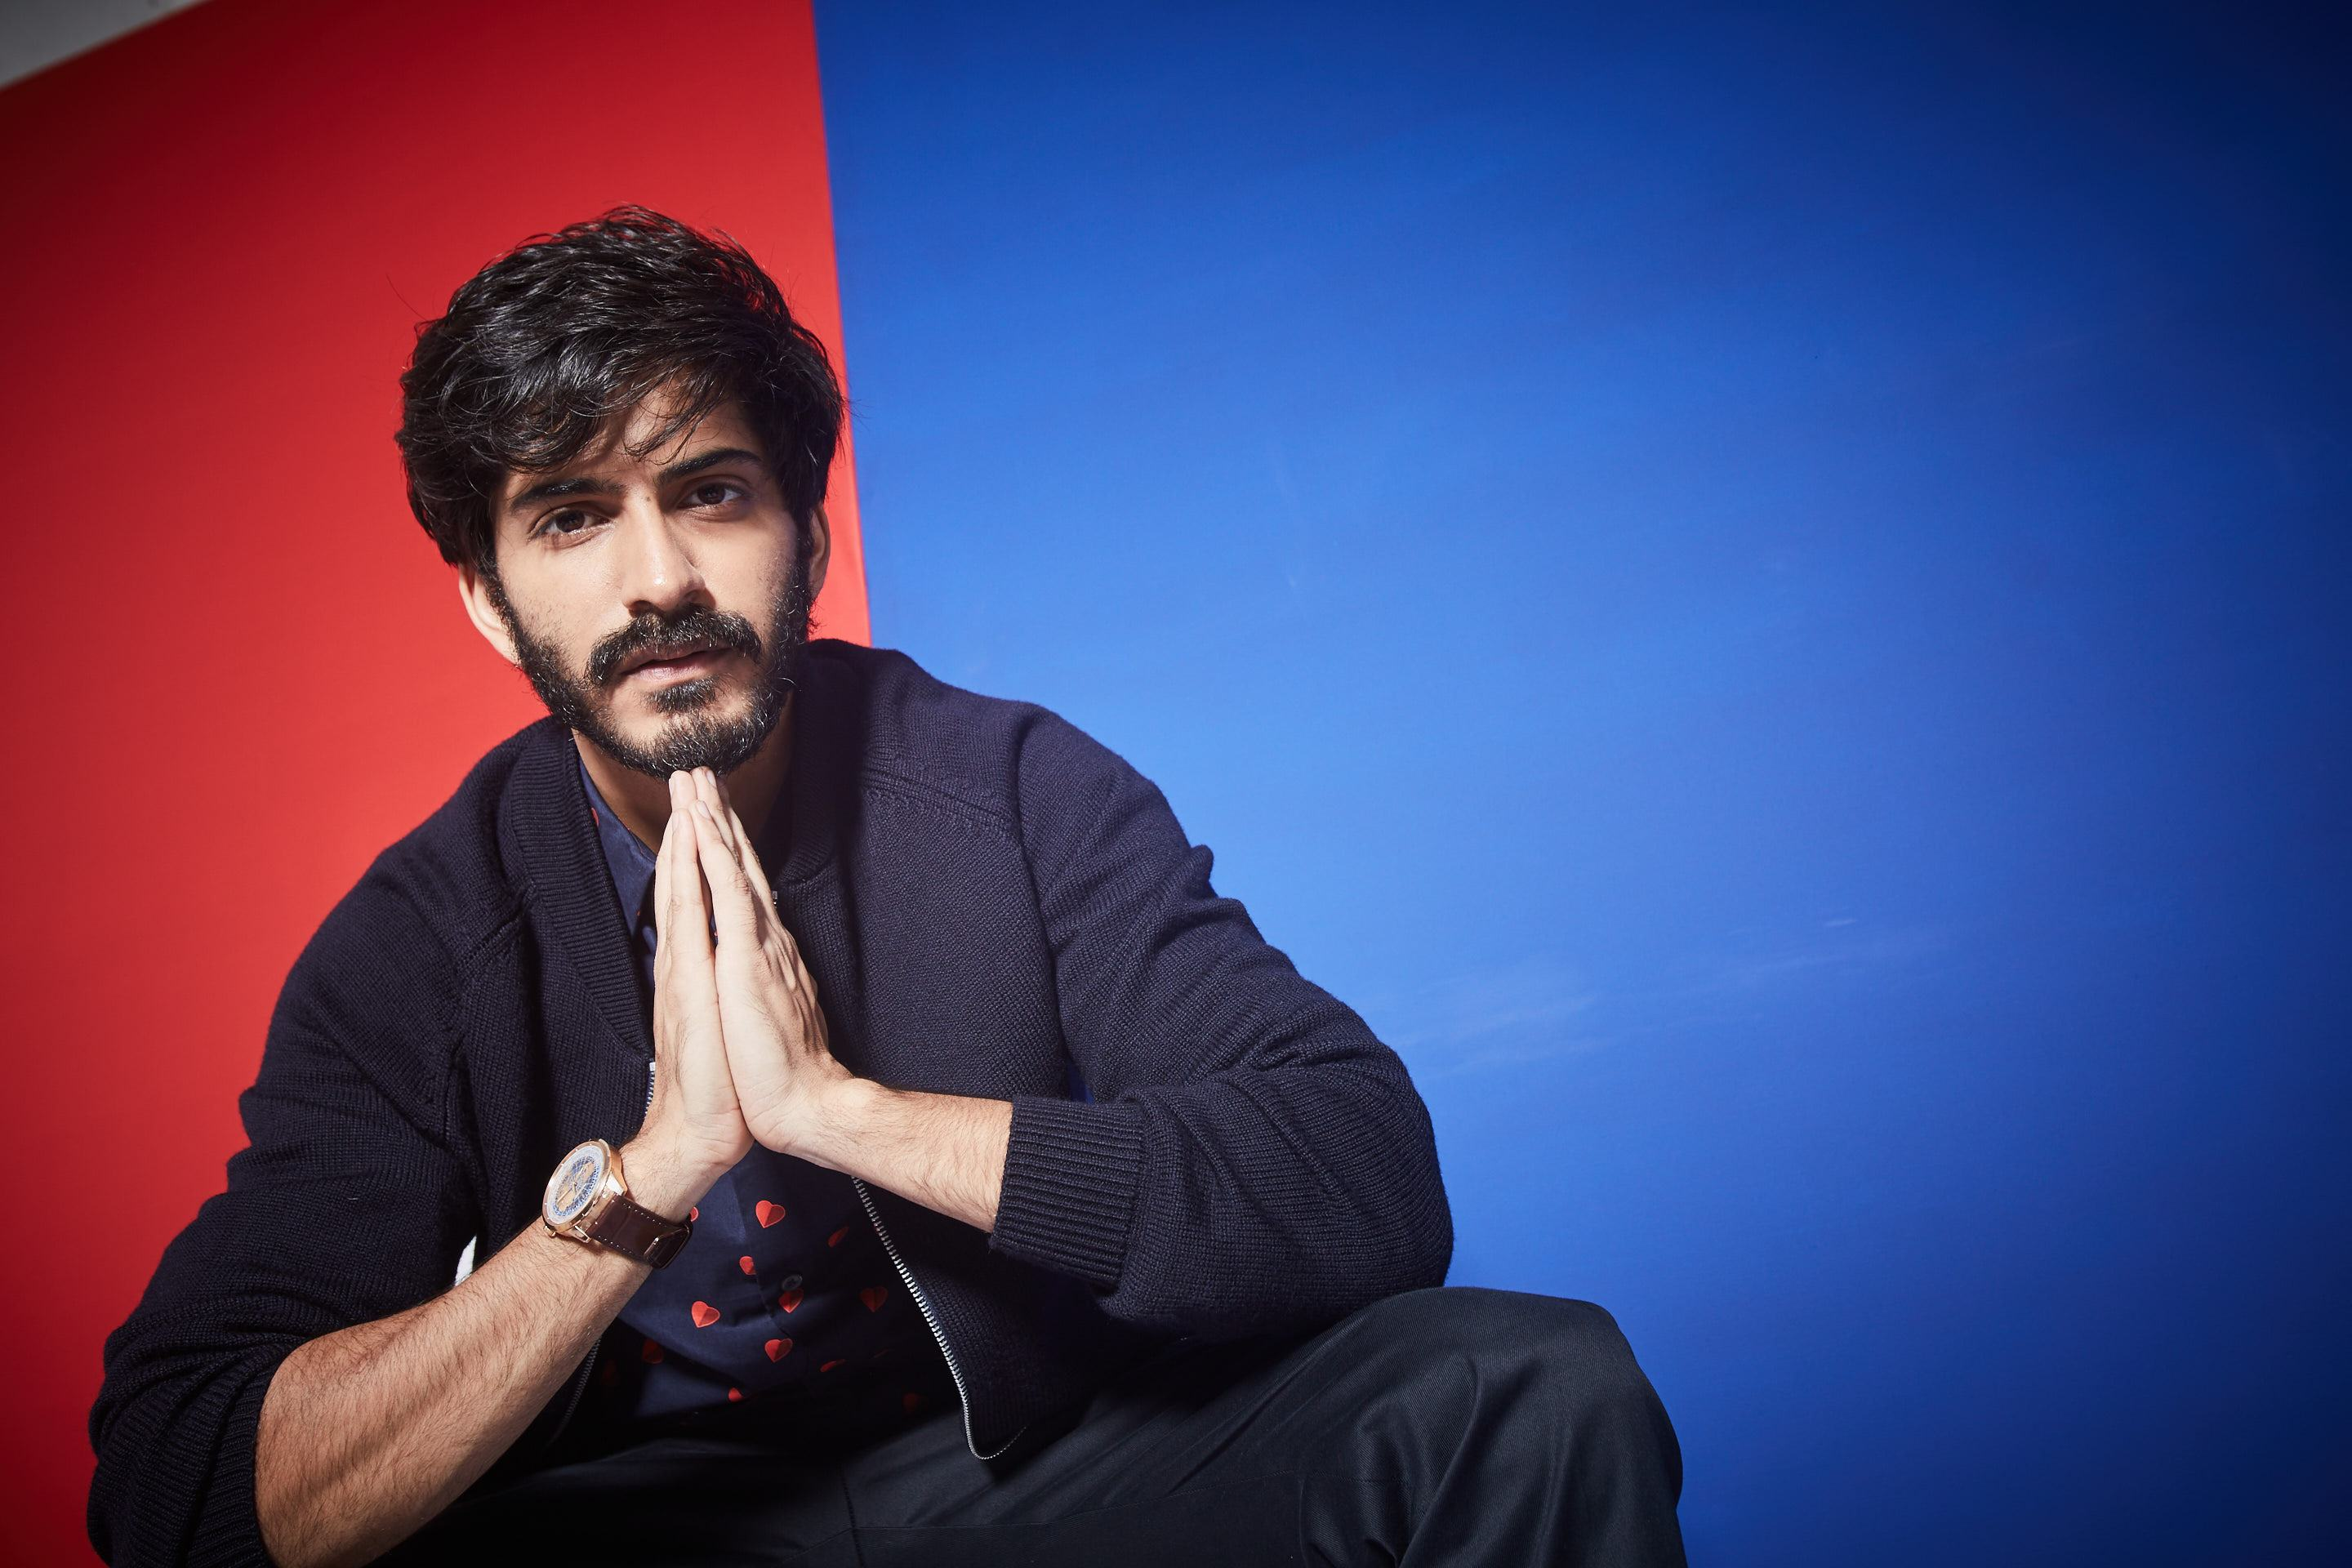 Everything you need to know about Harshvardhan Kapoor,few interesting facts about Harshvardhan Kapoor,Harshvardhan Kapoor facts, unknown and hidden facts about Harshvardhan Kapoor,Sonam Kapoor brother Harshvardhan Kapoor scerts,Harshvardhan Kapoor real life facts, Mango Bollywood